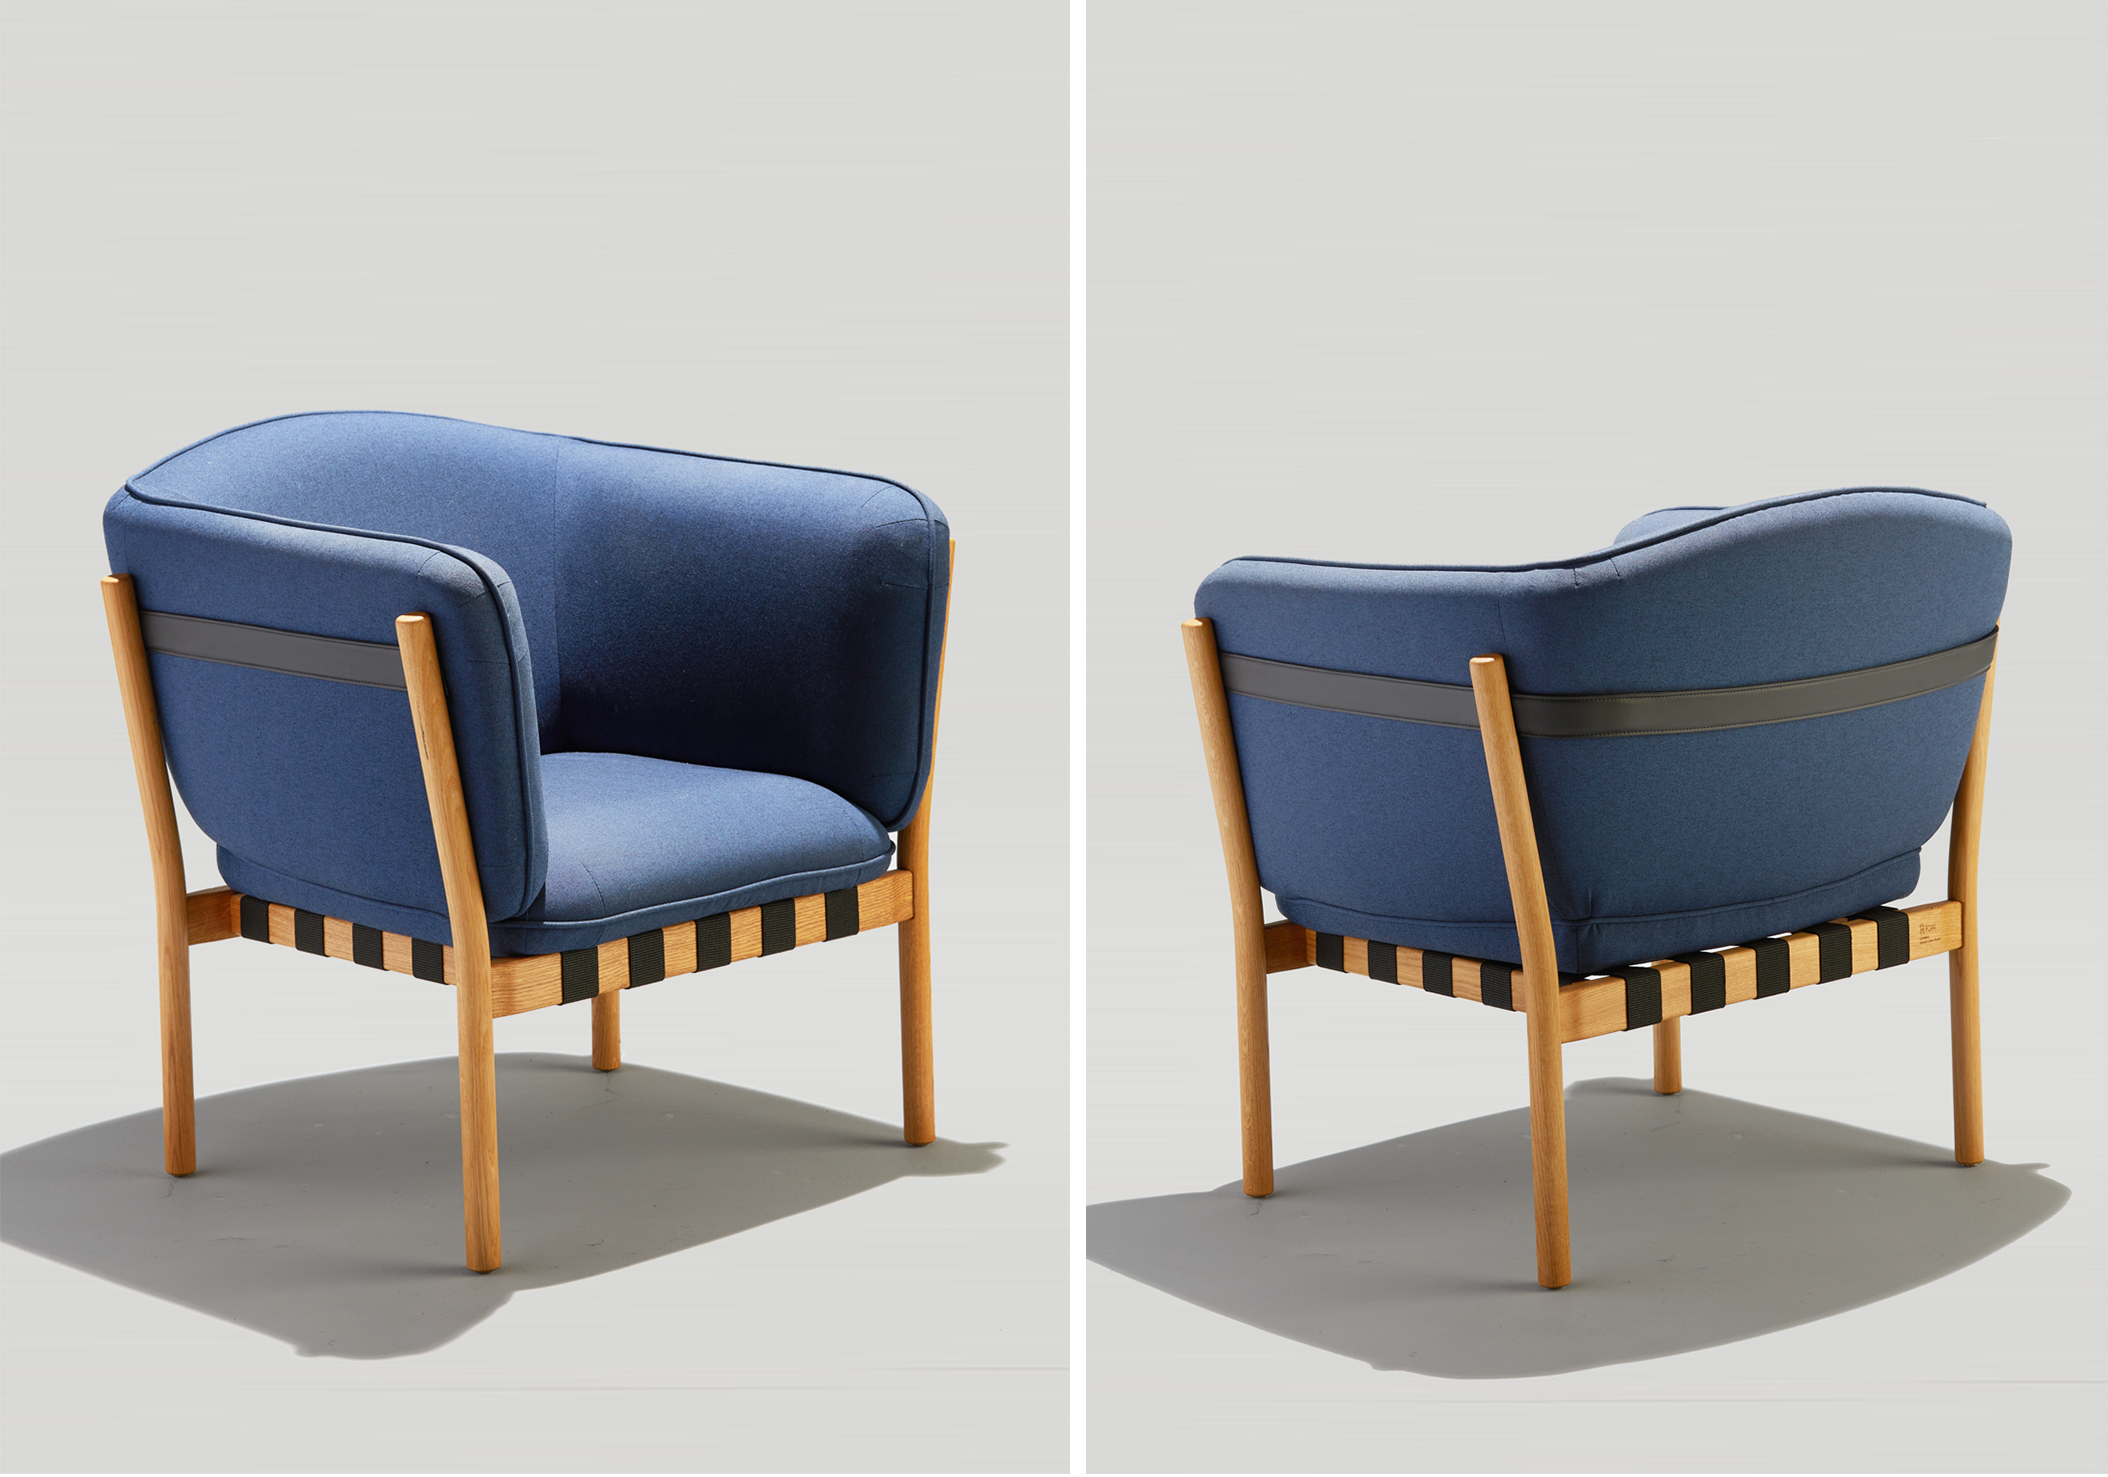 Dowel Lounge front and back with white oak legs, a black top strap and blue upholstery.